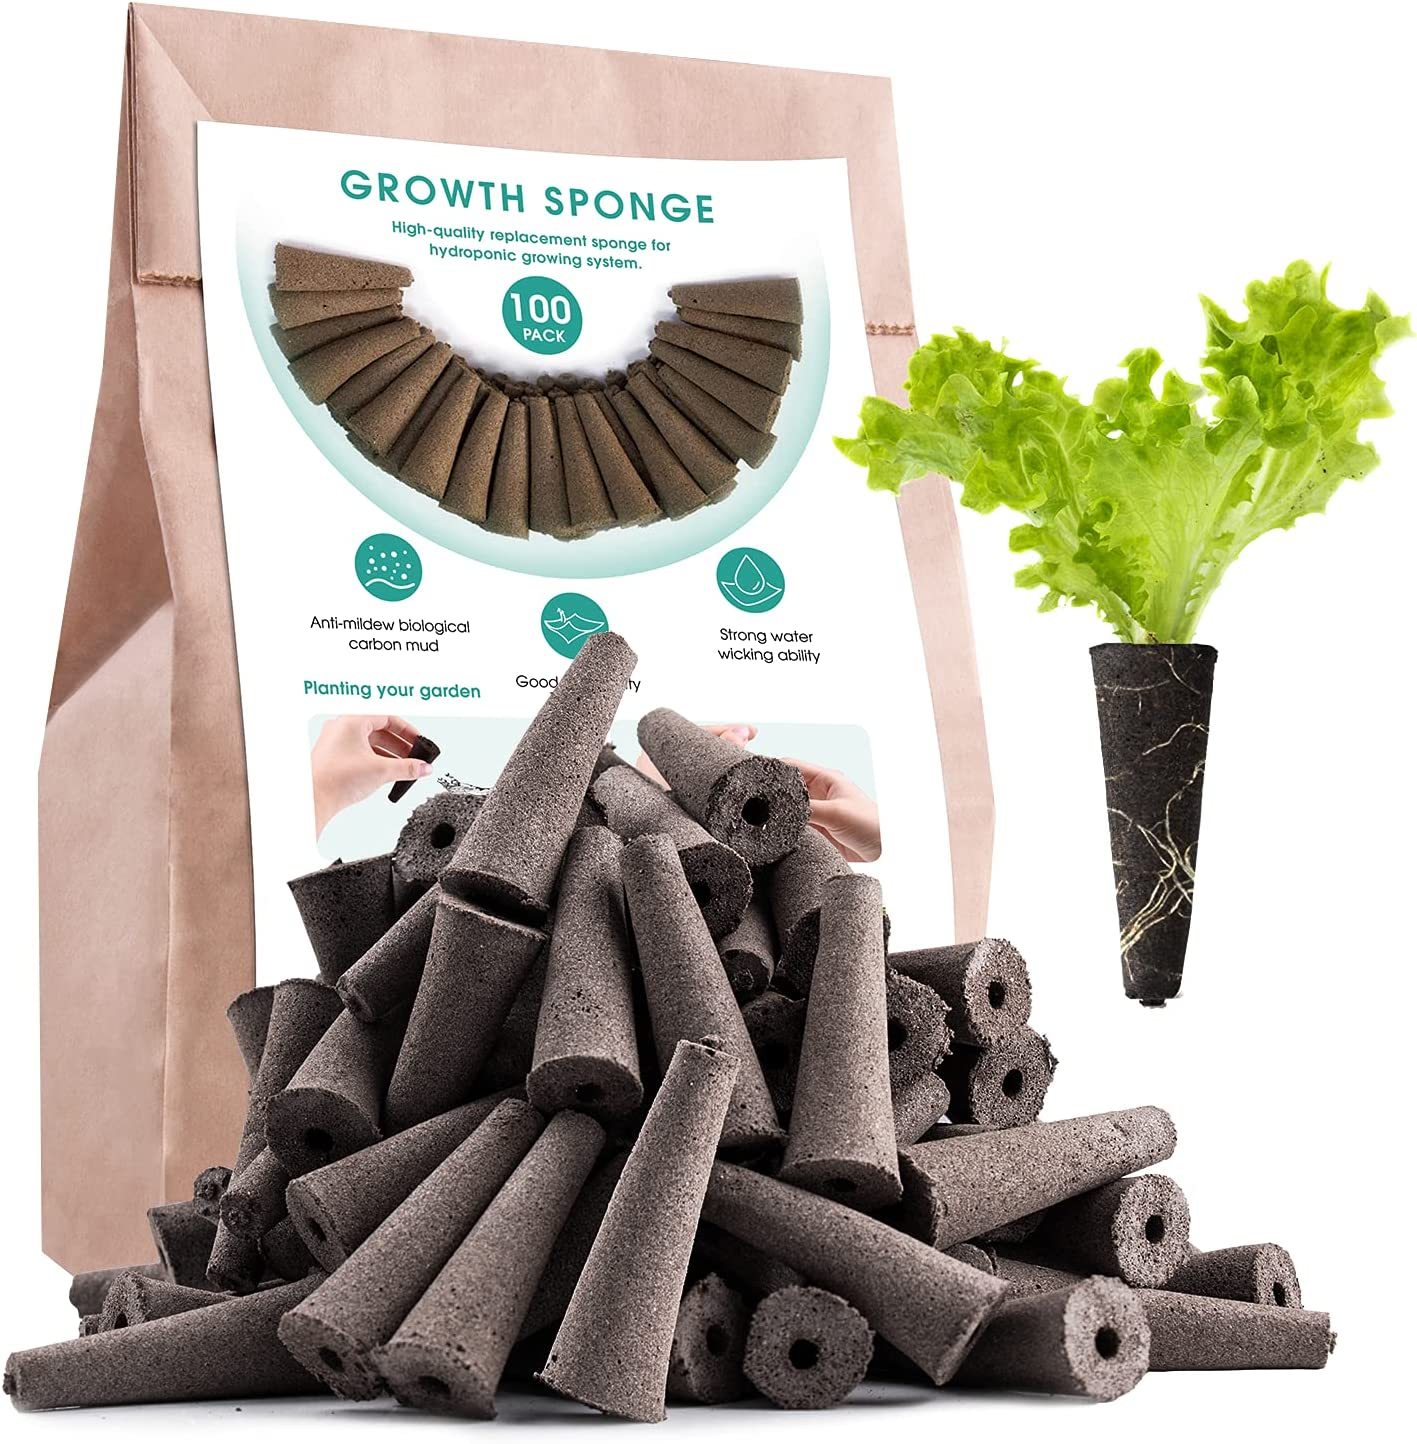 100 Pack Growth Sponges, Replacement Root Growth Sponges Seed Pods Compatible with AeroGarden, Seedling Starter Sponges Kit for Hydroponic Indoor Garden System